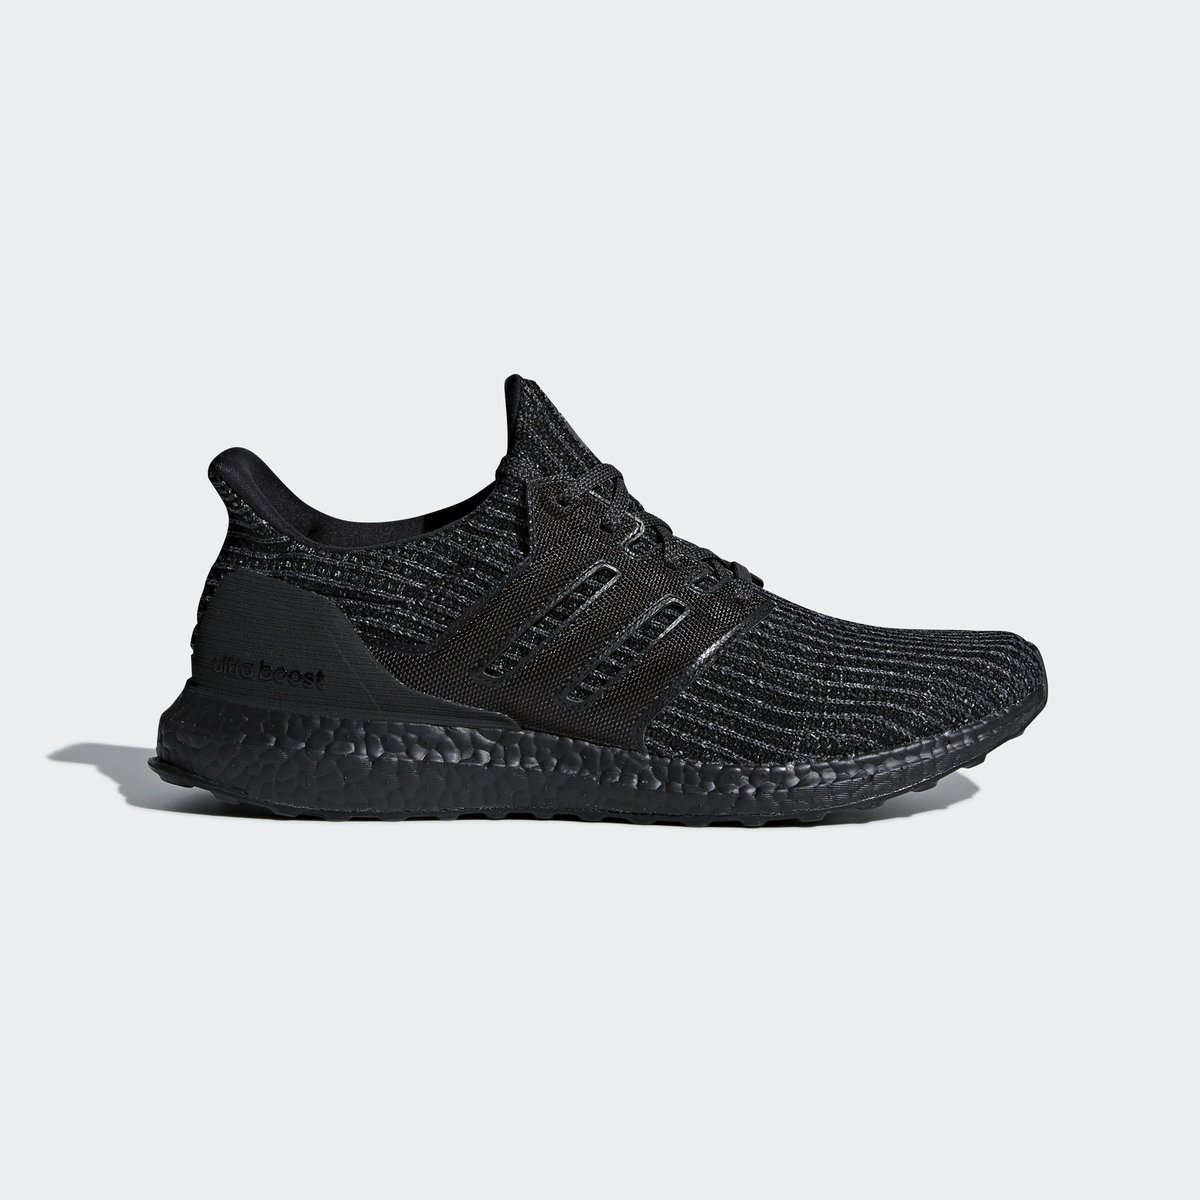 f0f4061b062 Sizes selling out on  FinishLine. adidas Ultra Boost 4.0 Triple Black. —   http   bit.ly 2BEATv2 pic.twitter.com InPE6hnfsD